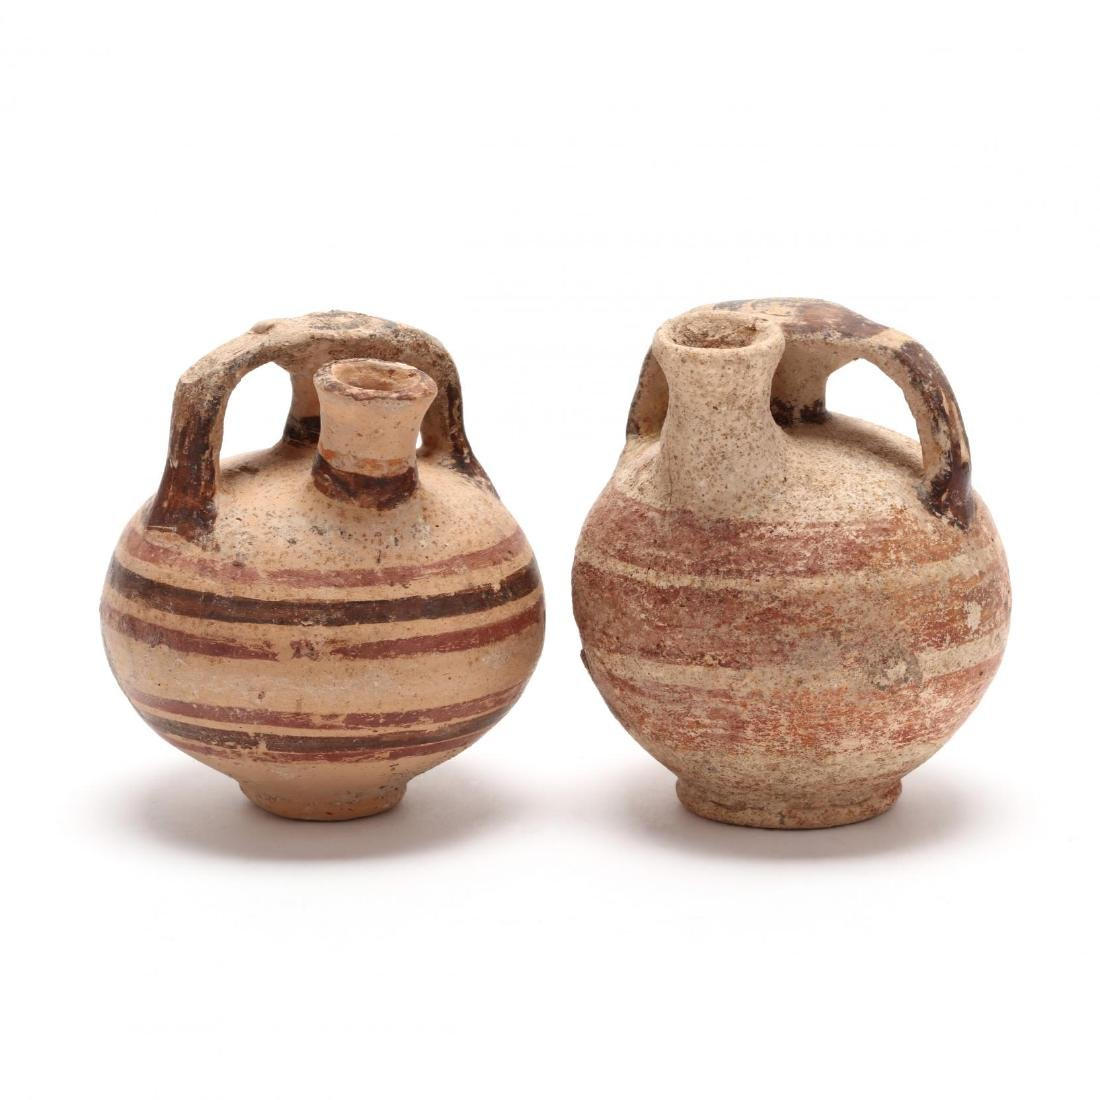 Two Cypriot-Mycenaean Stirrup Juglets